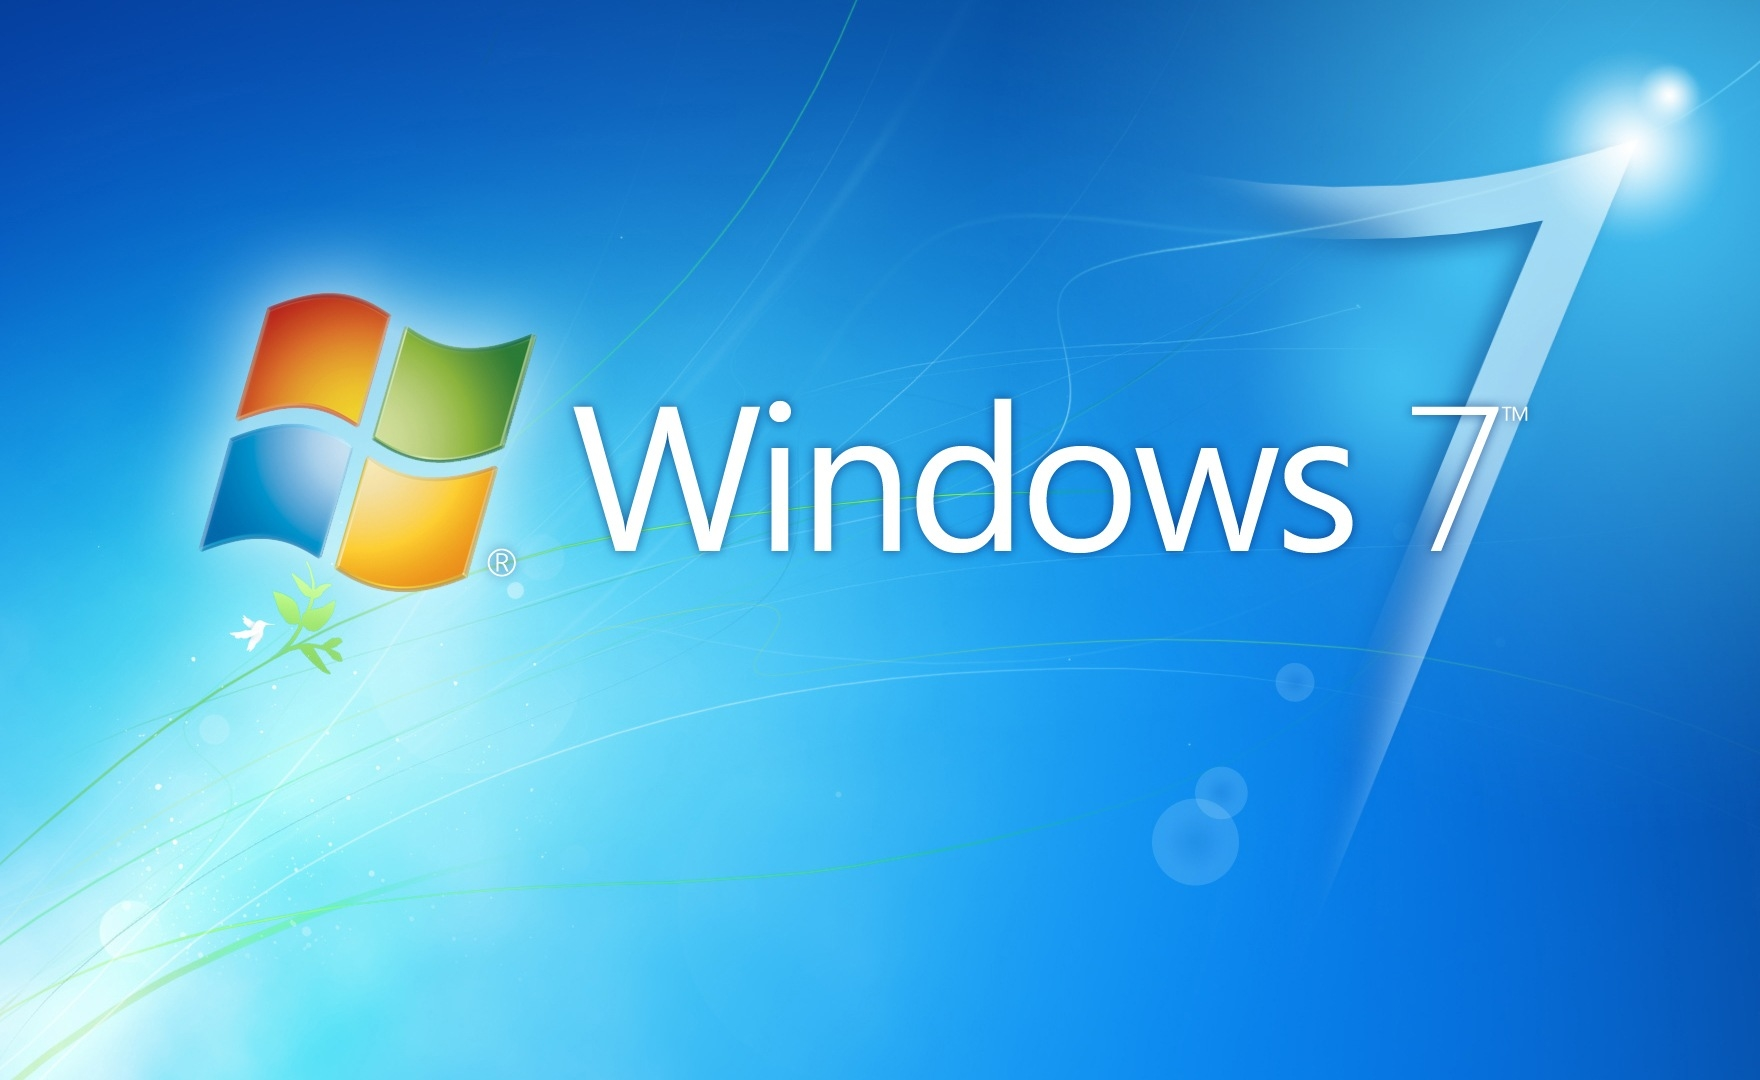 Windows 7 Pro agli sgoccioli, un pop-up ricorda di passare a Windows 10